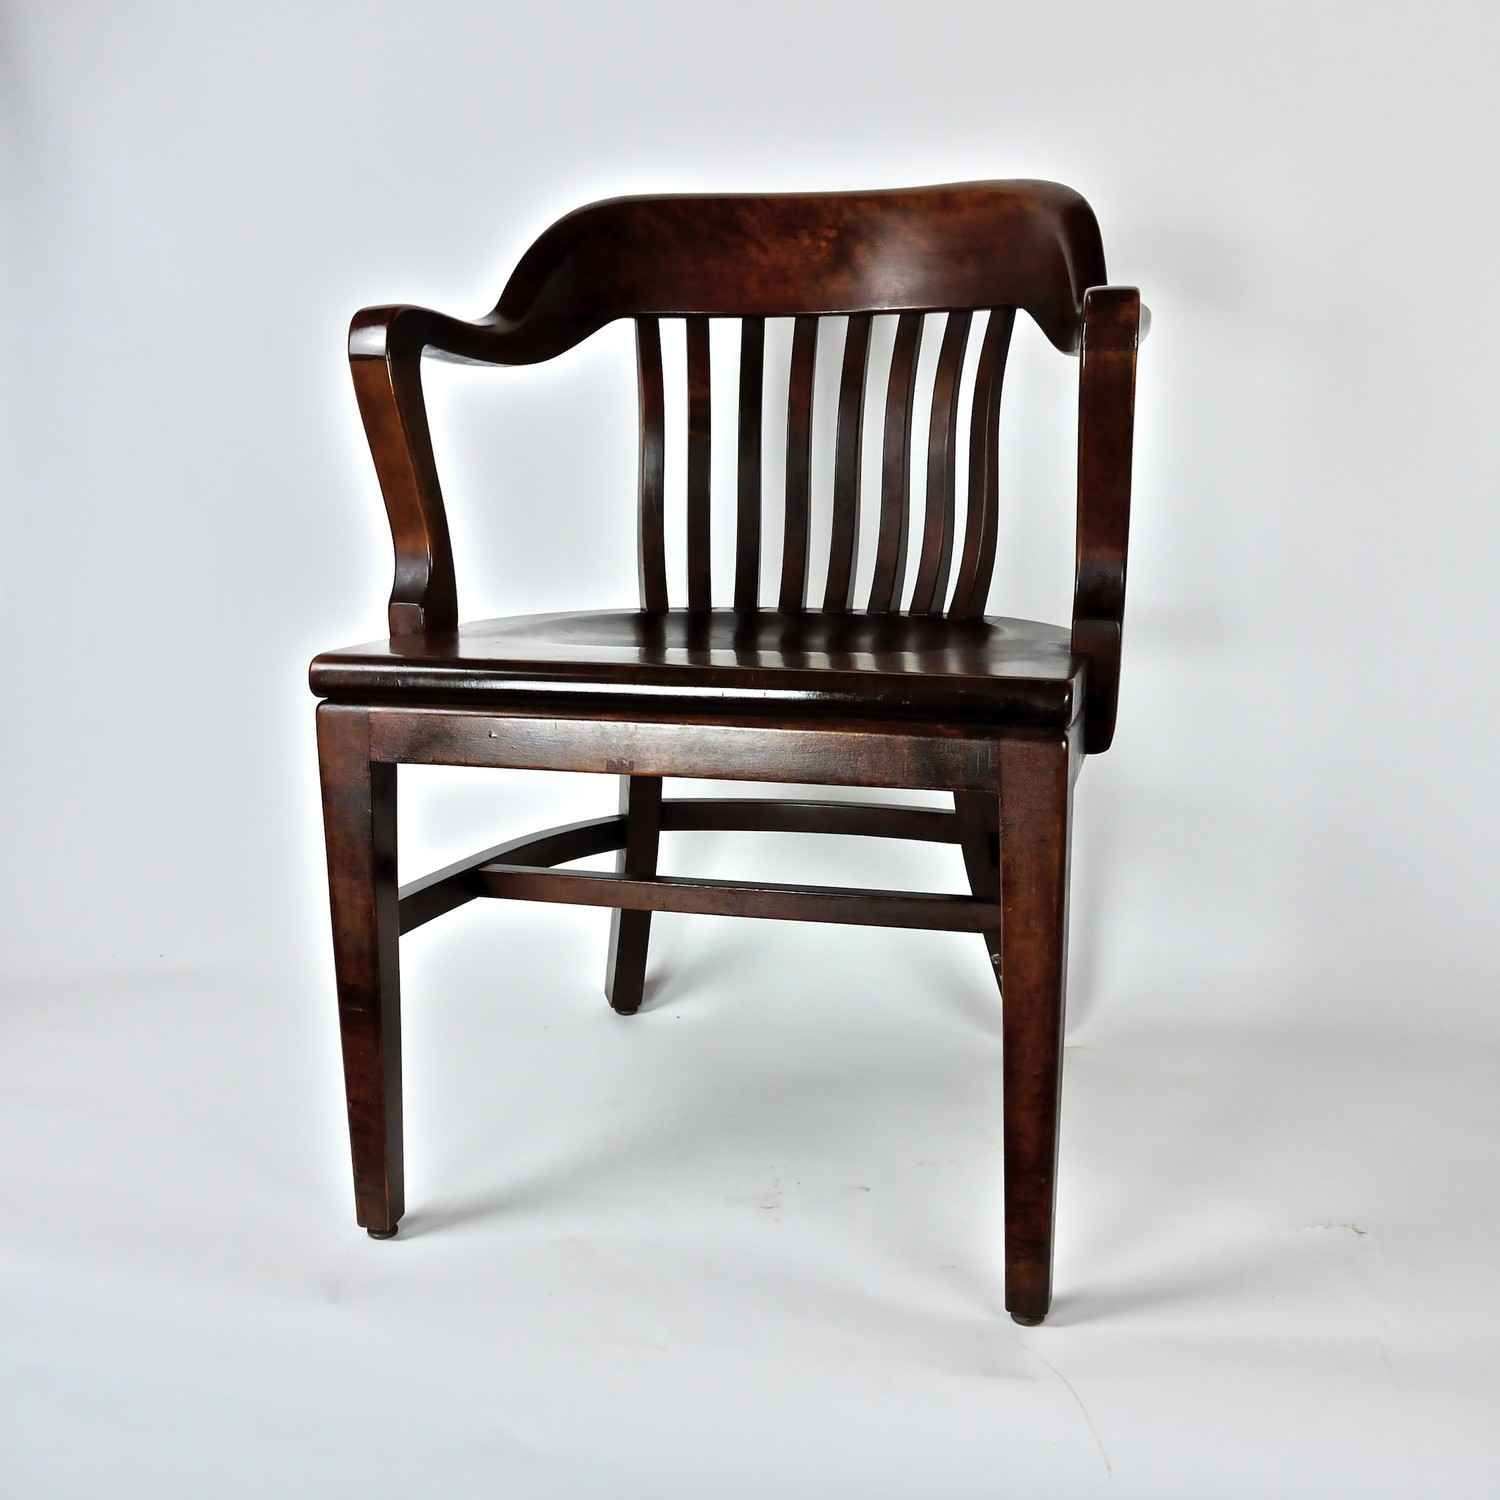 Antique Post War Wooden Office Library Chair By DailyMemorandum Vintage L